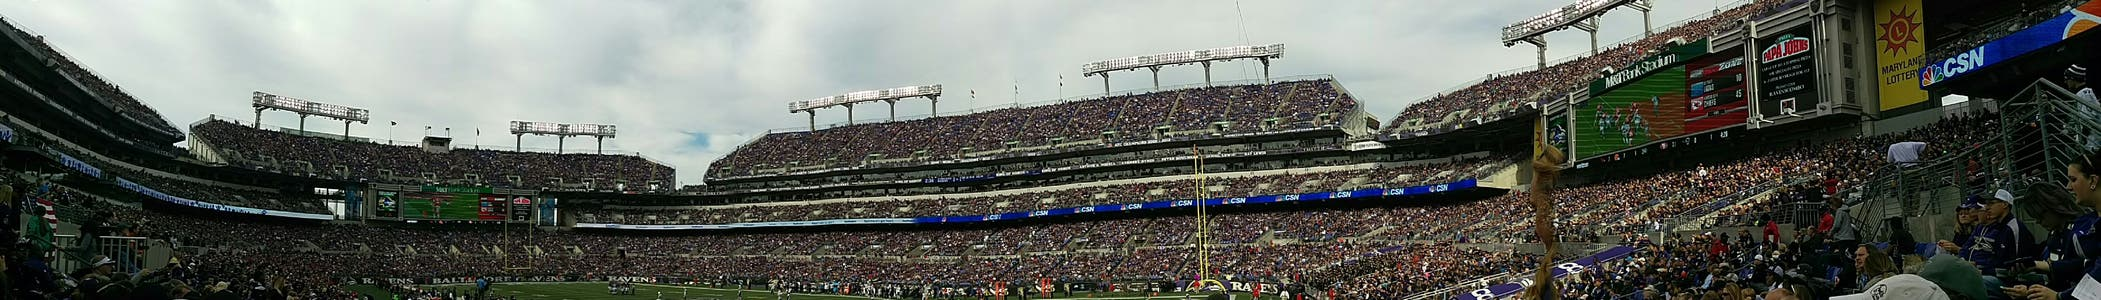 Fotos de baltimore im genes y fotograf as for Restaurants m t bank stadium